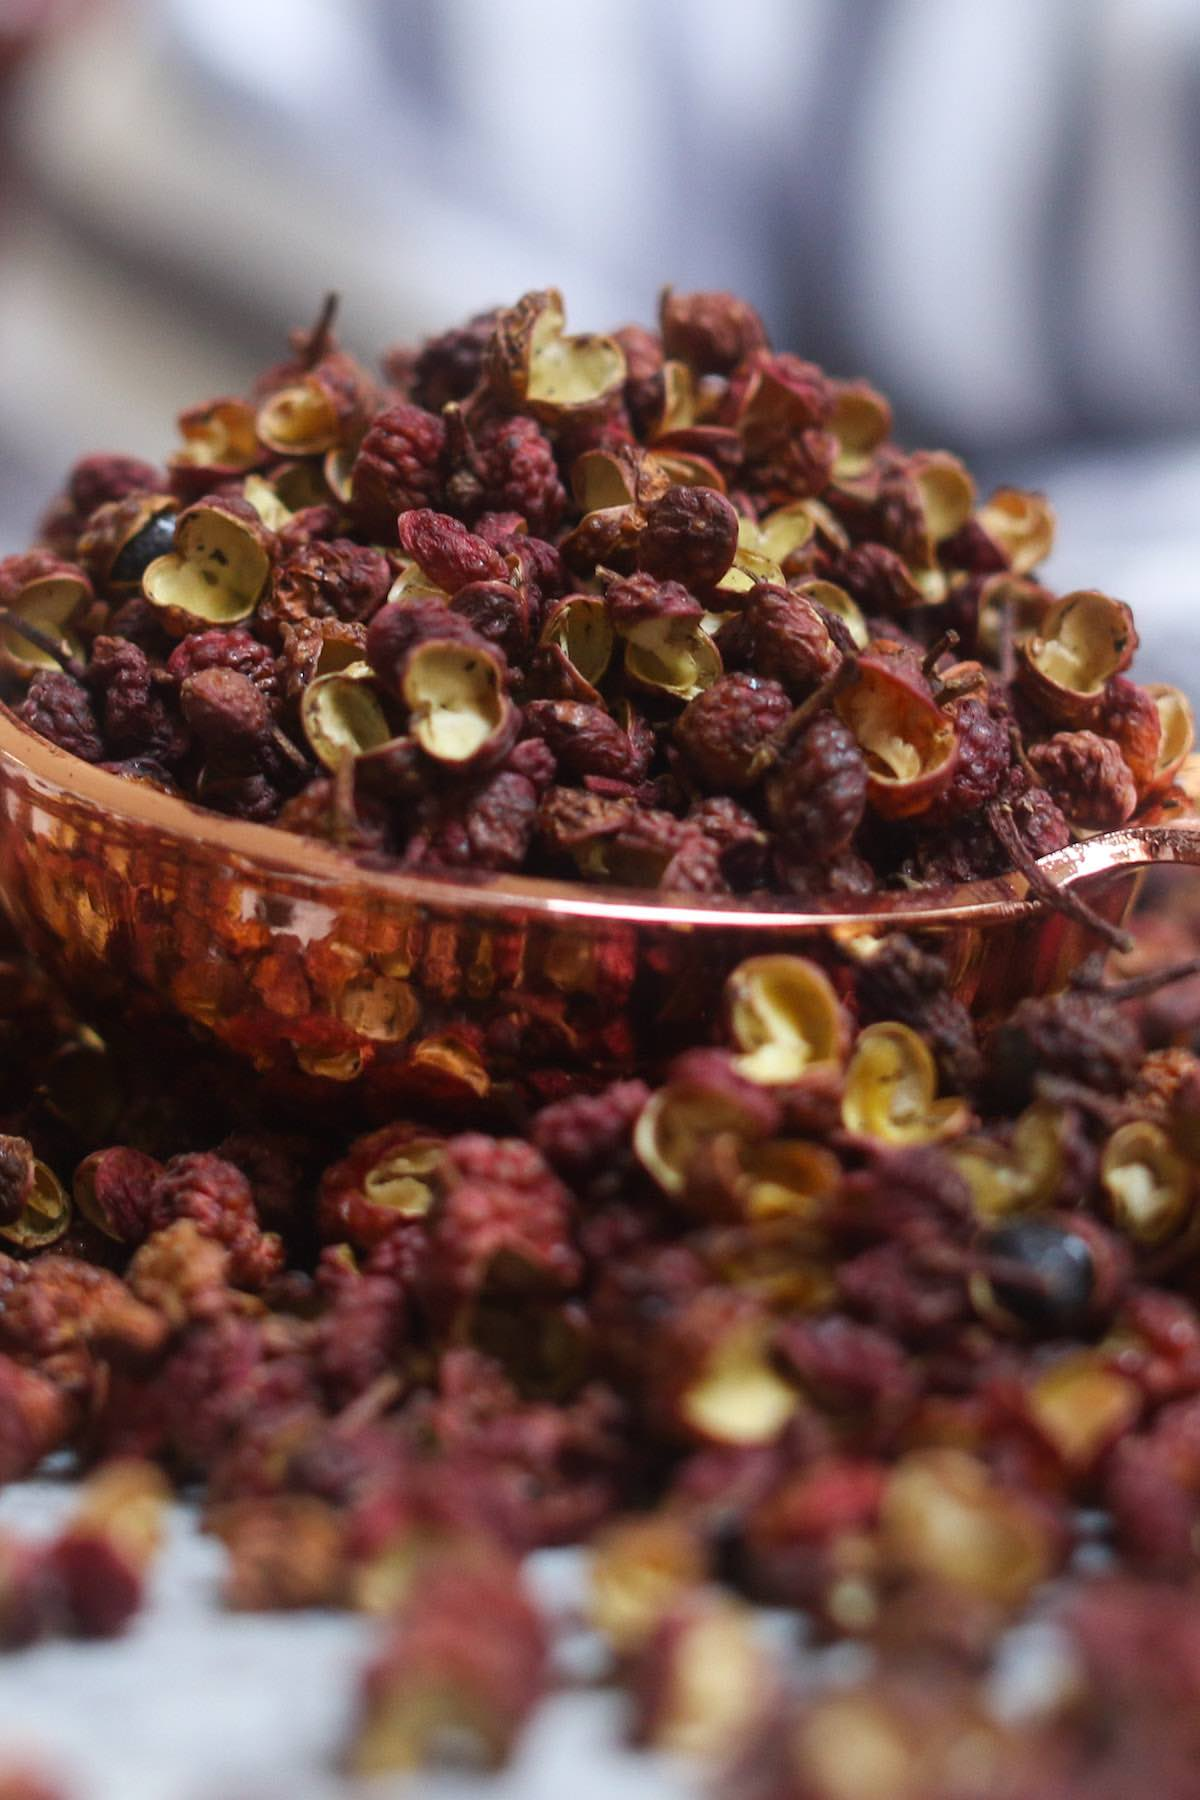 Szechuan peppercorn is a spice produced from the pinkish-red husks of seeds of the prickly ash tree (Zanthoxylum).